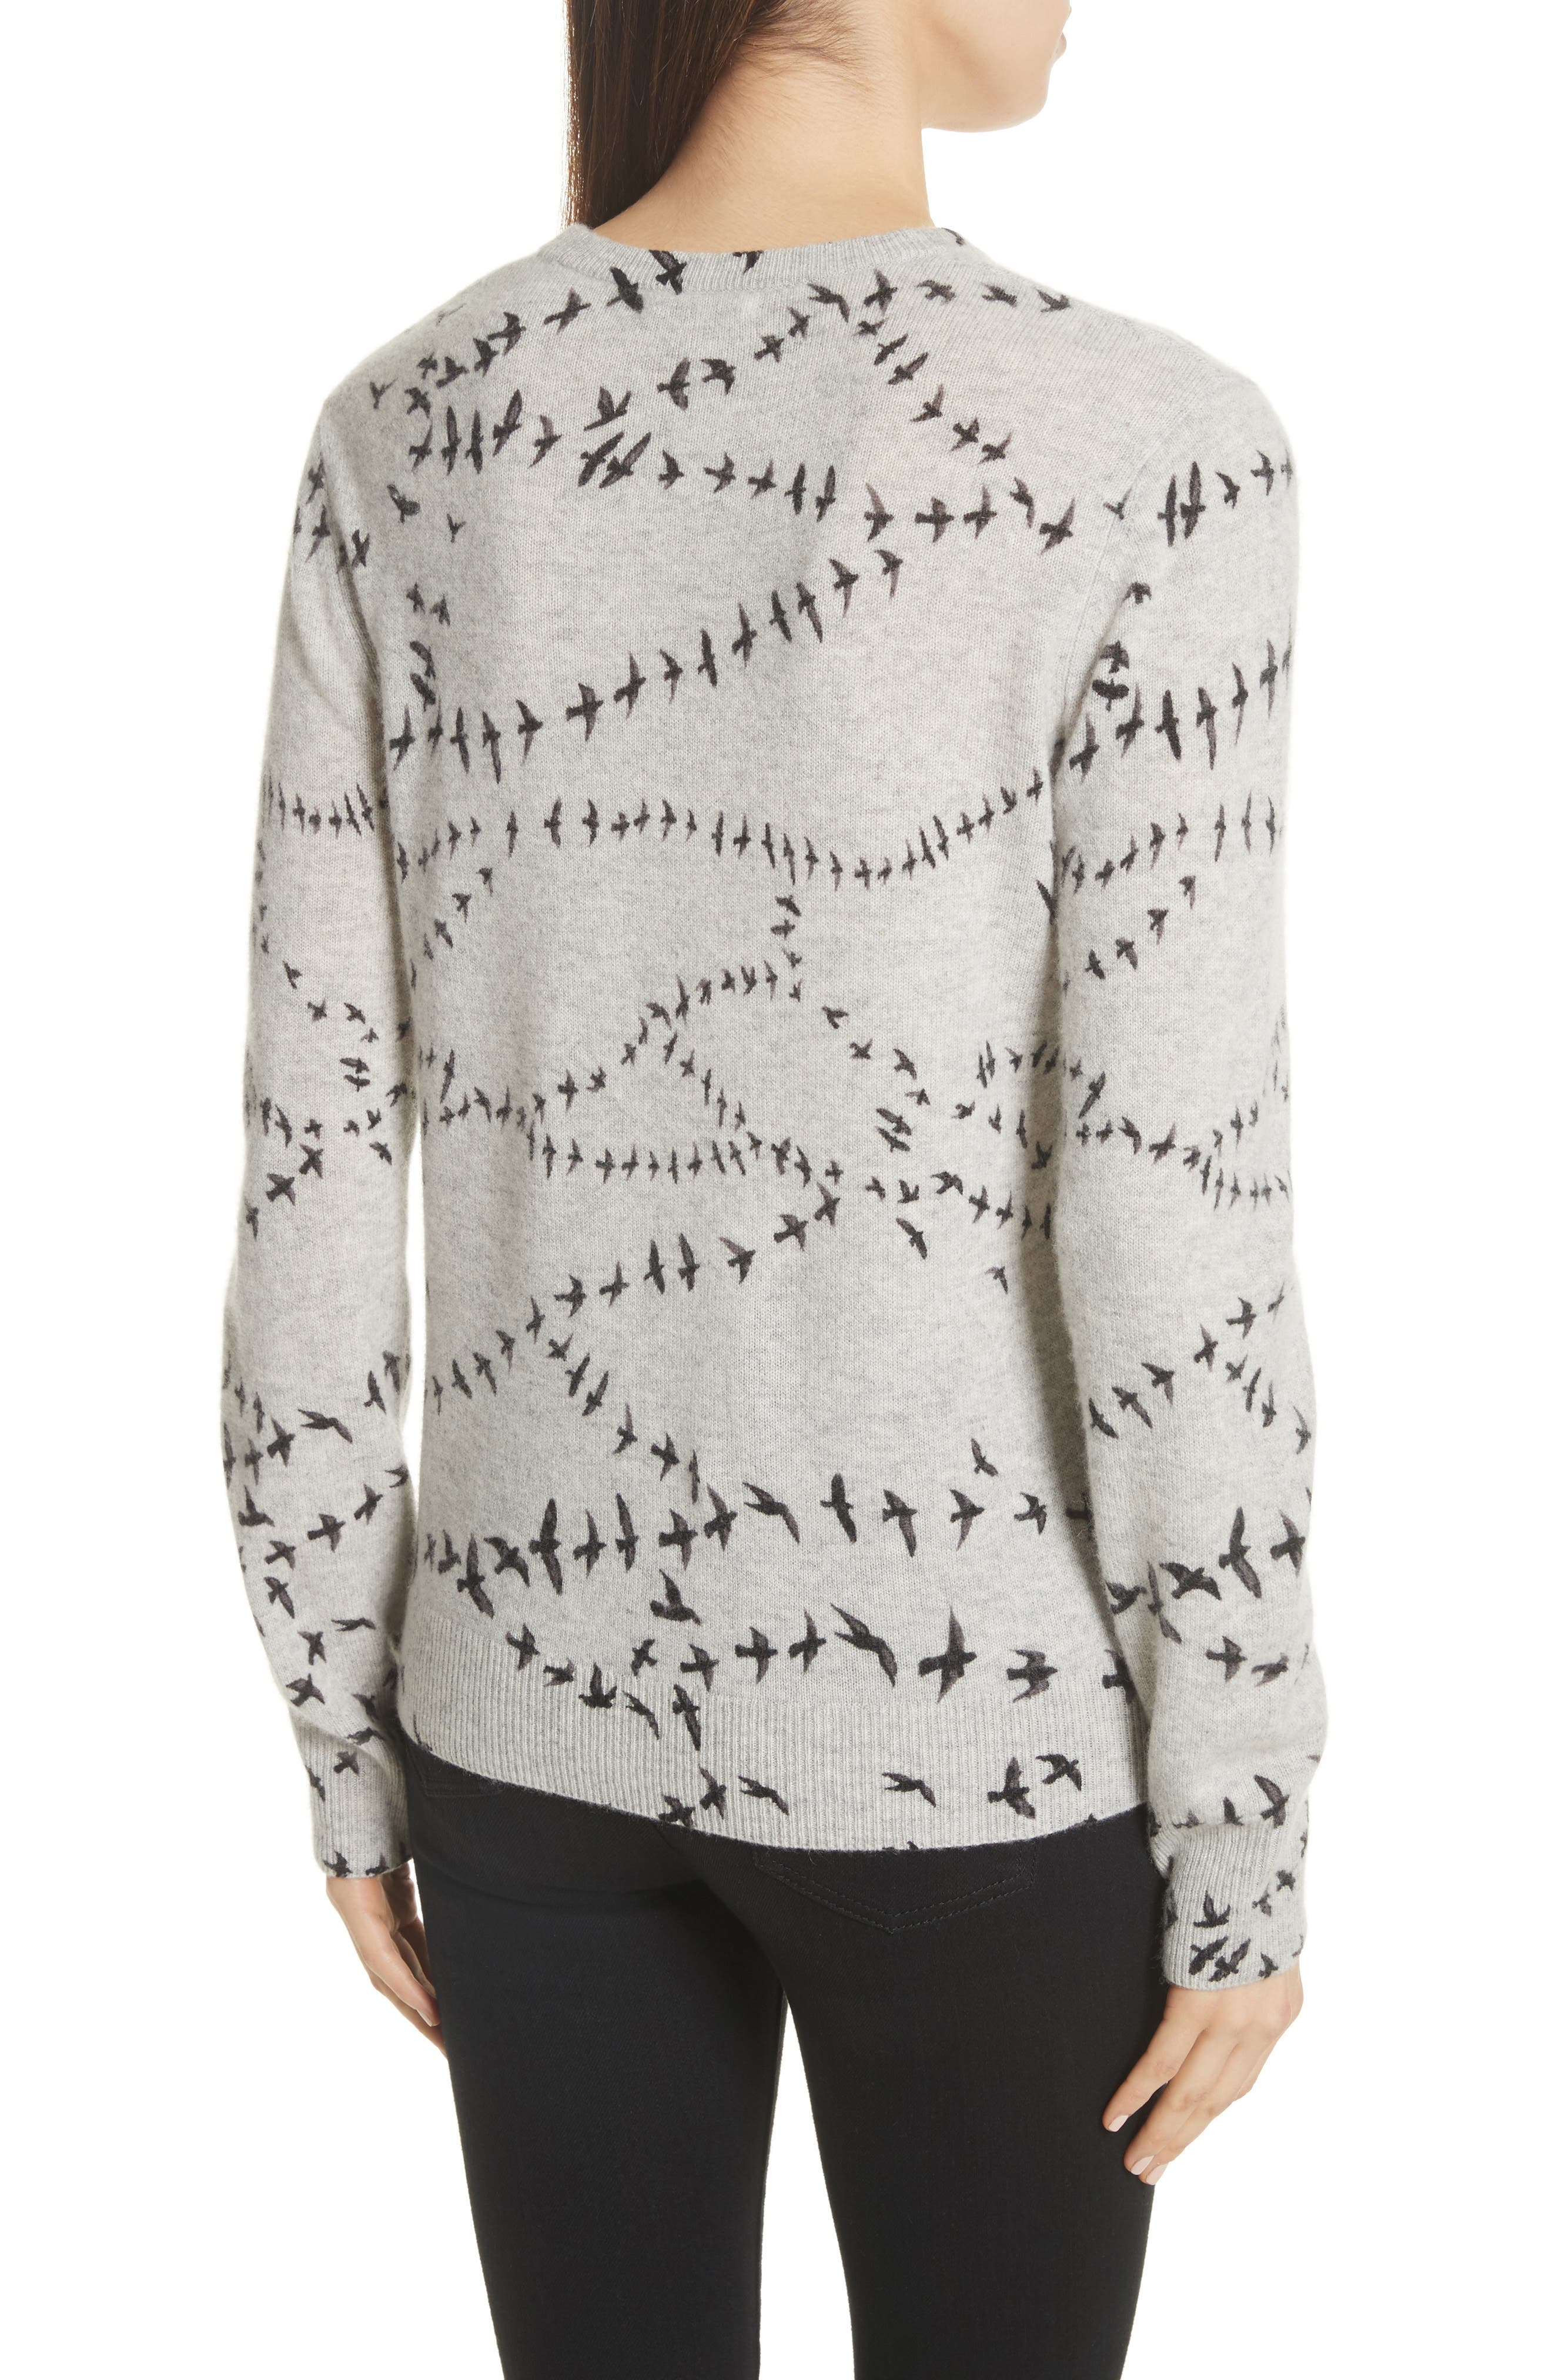 Shane Bird Print Cashmere Sweater,                             Alternate thumbnail 2, color,                             Light Heather Grey Multi